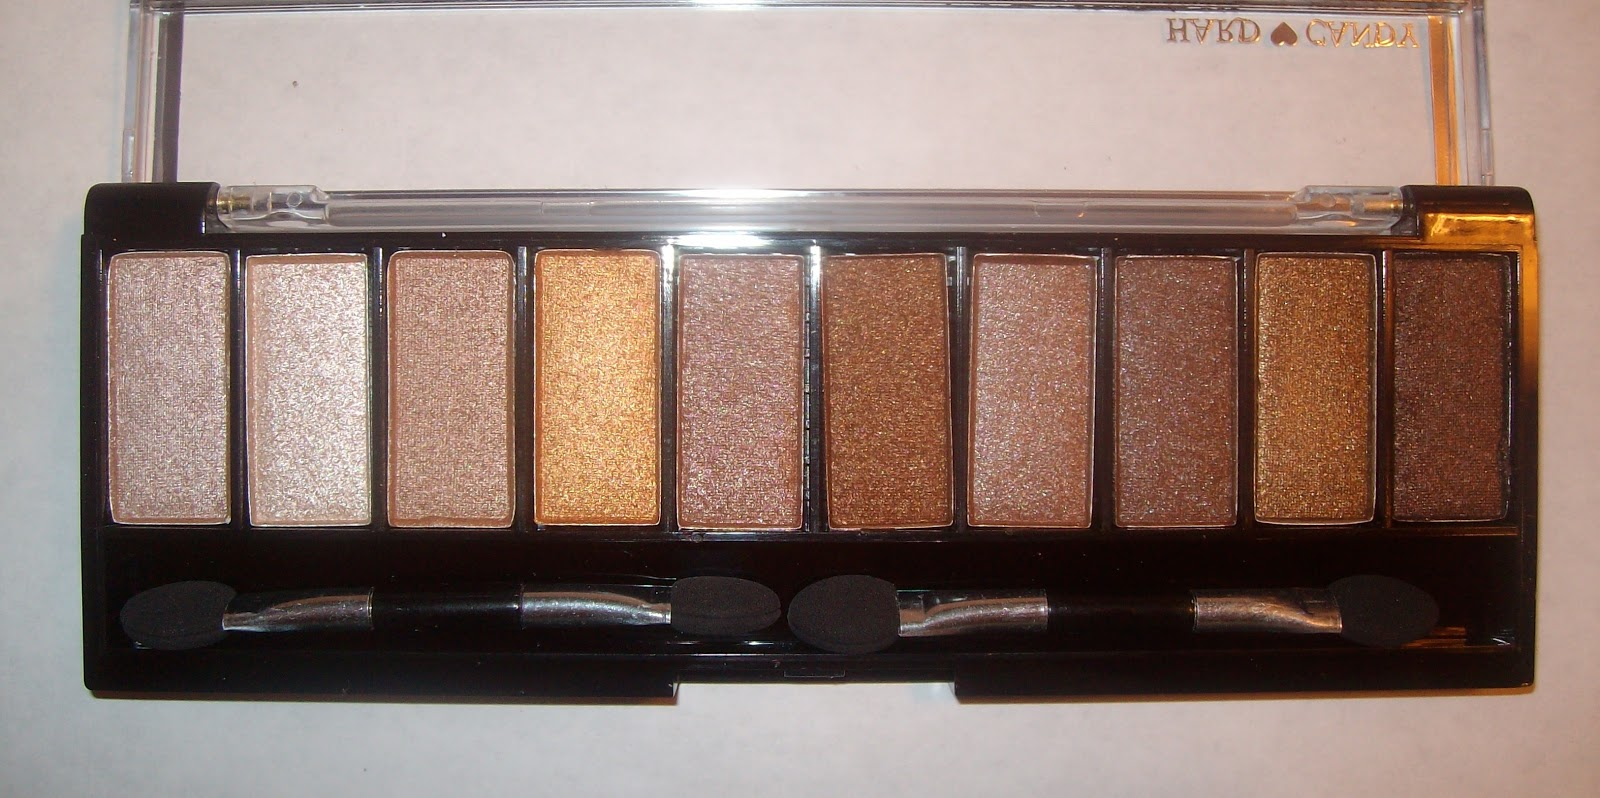 Shades Of Neutral Me Hard Candy Top Ten Eye Shadow Collection In